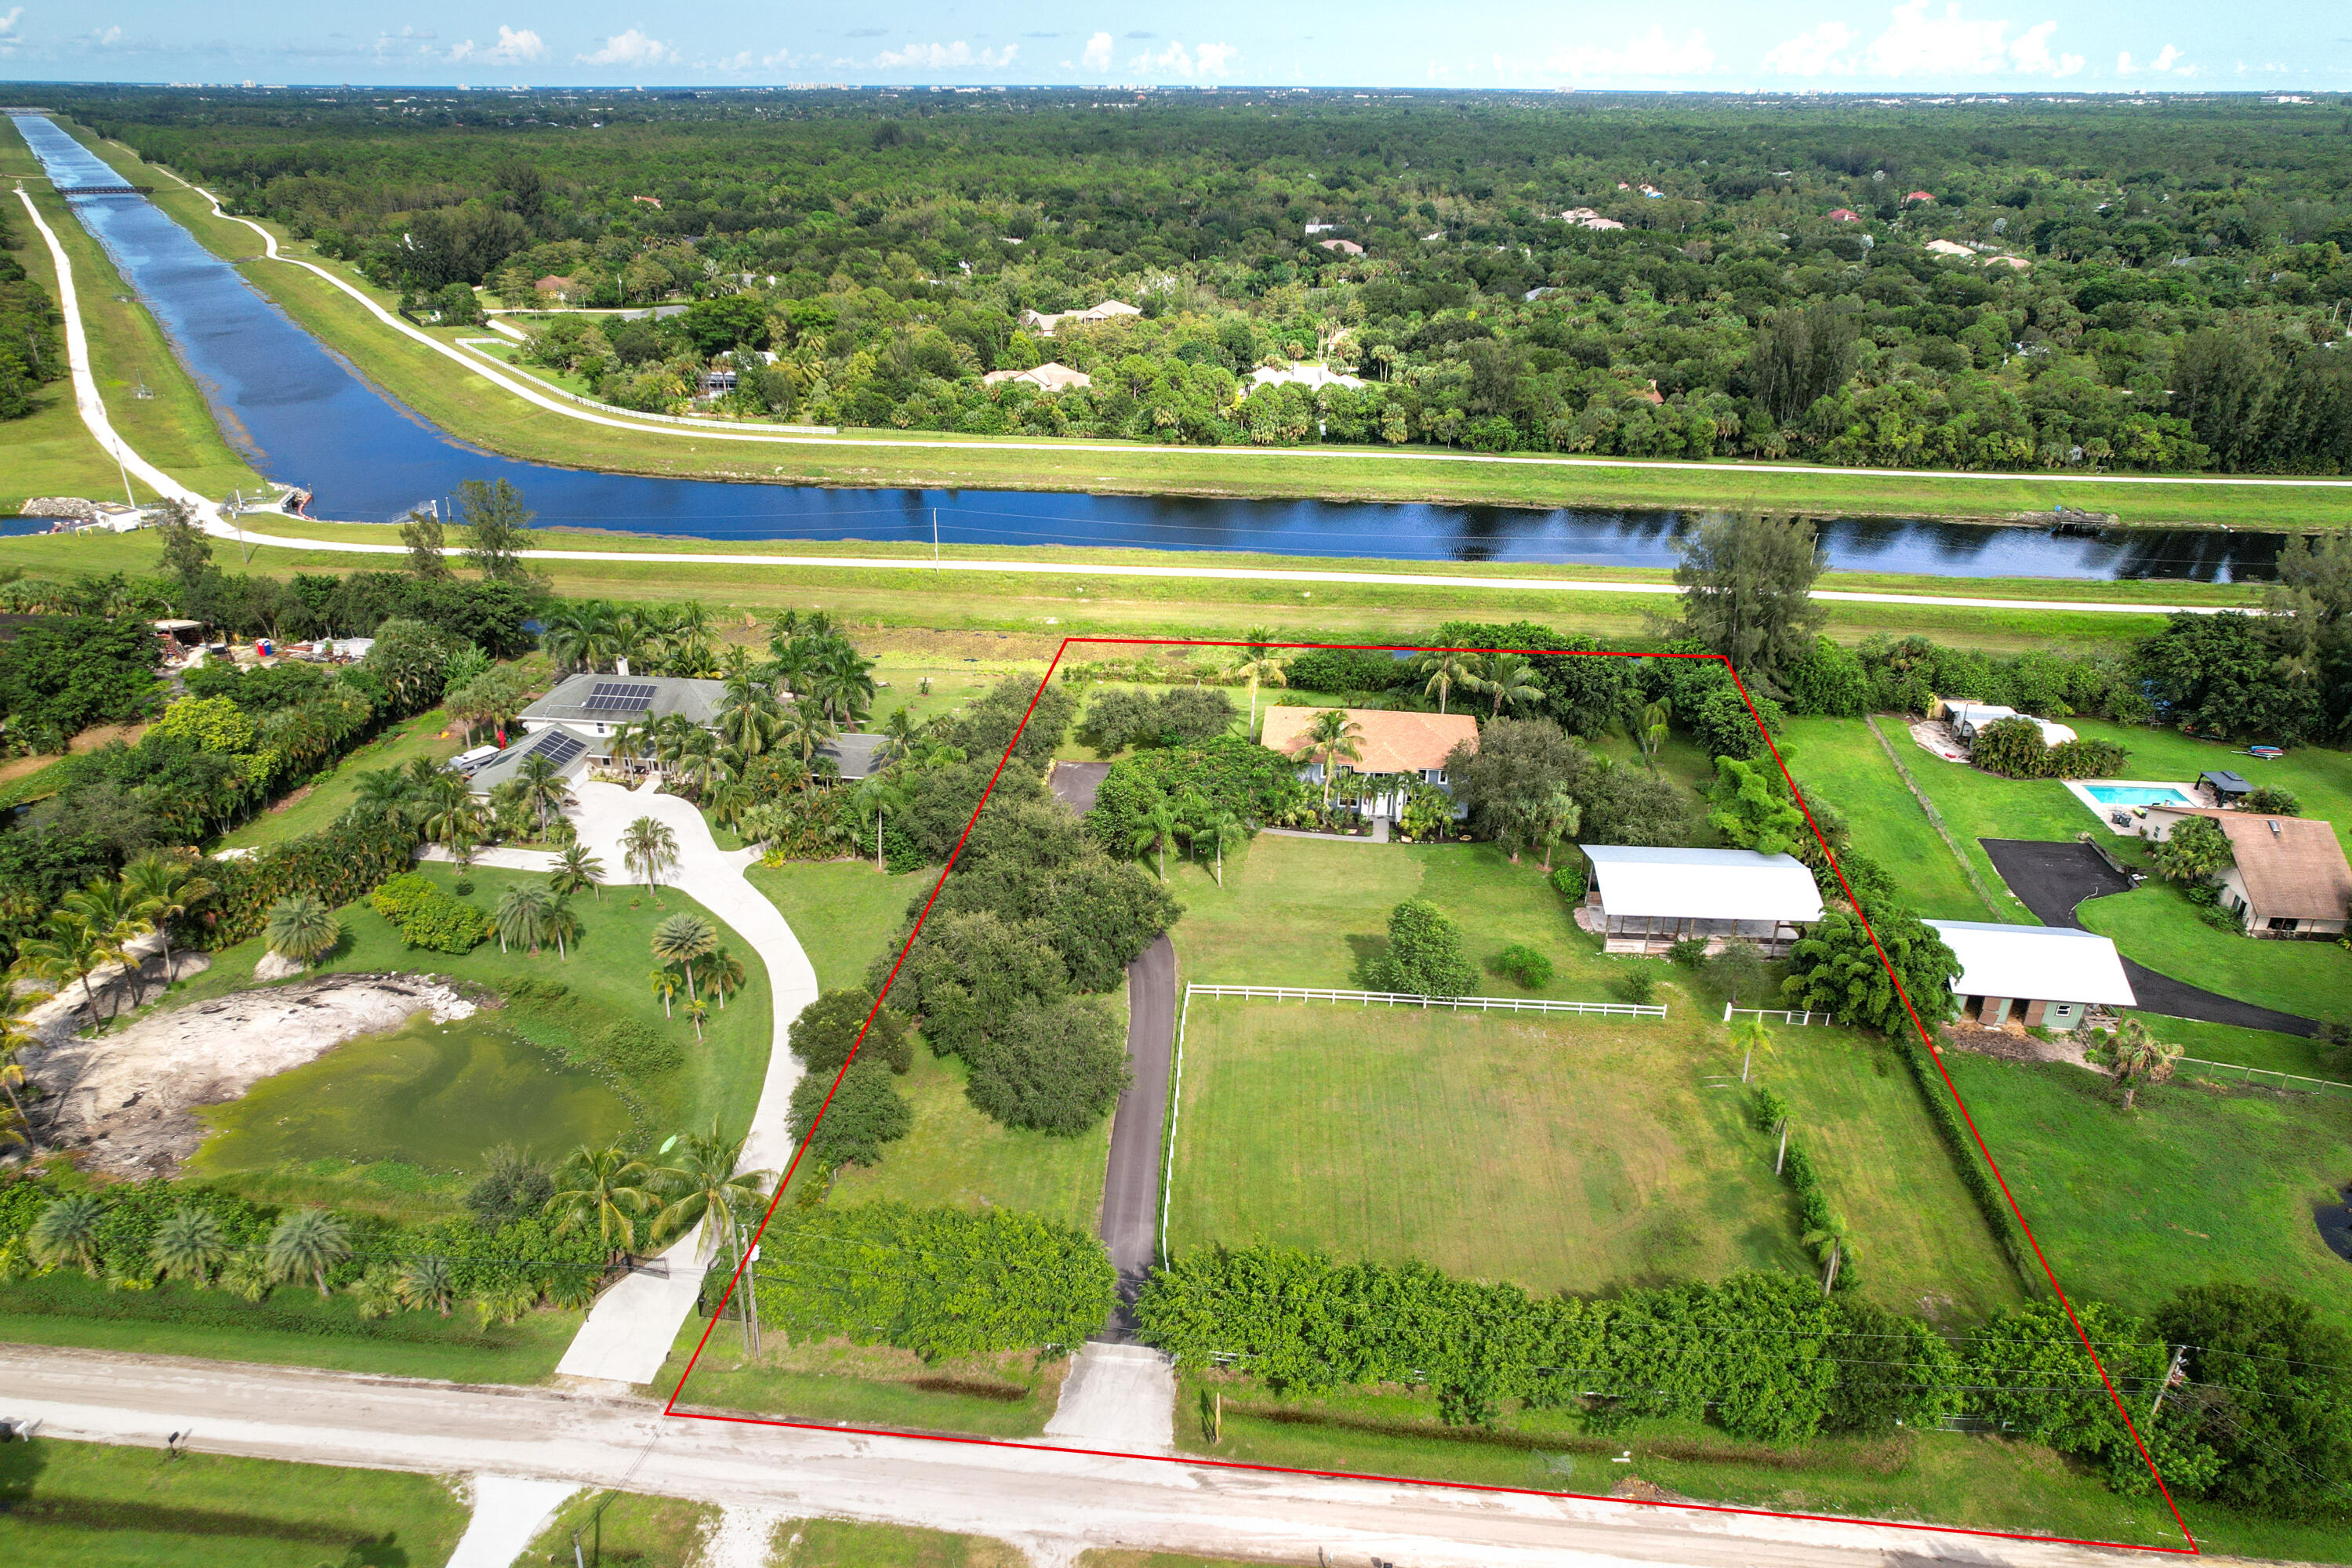 Best price per/SF over 3000SF! Savor the solitude on the eastern edge Jupiter Farms minutes to world class beaches & dining. Enjoy breath-taking sunrise vistas over water from the second floor kitchen/great-room in an enclave of 3000-5000SF homes.  Nestled on nearly 3 acres of mature landscaping & a tree-lined driveway, RanchVista invites you to own a premium piece of paradise in Jupiter. The oversized pole barn provides endless opportunities for equestrian, storage, or business uses while the 4 car garage increases the appeal for those with toys or business needs. From the roof to the appliances, the infrastructure of this home is prepared for years of maintenance-free living. Enjoy this home as presented, or creatively tailor the 4360SF this rarity offers.Inside pics virtually staged.